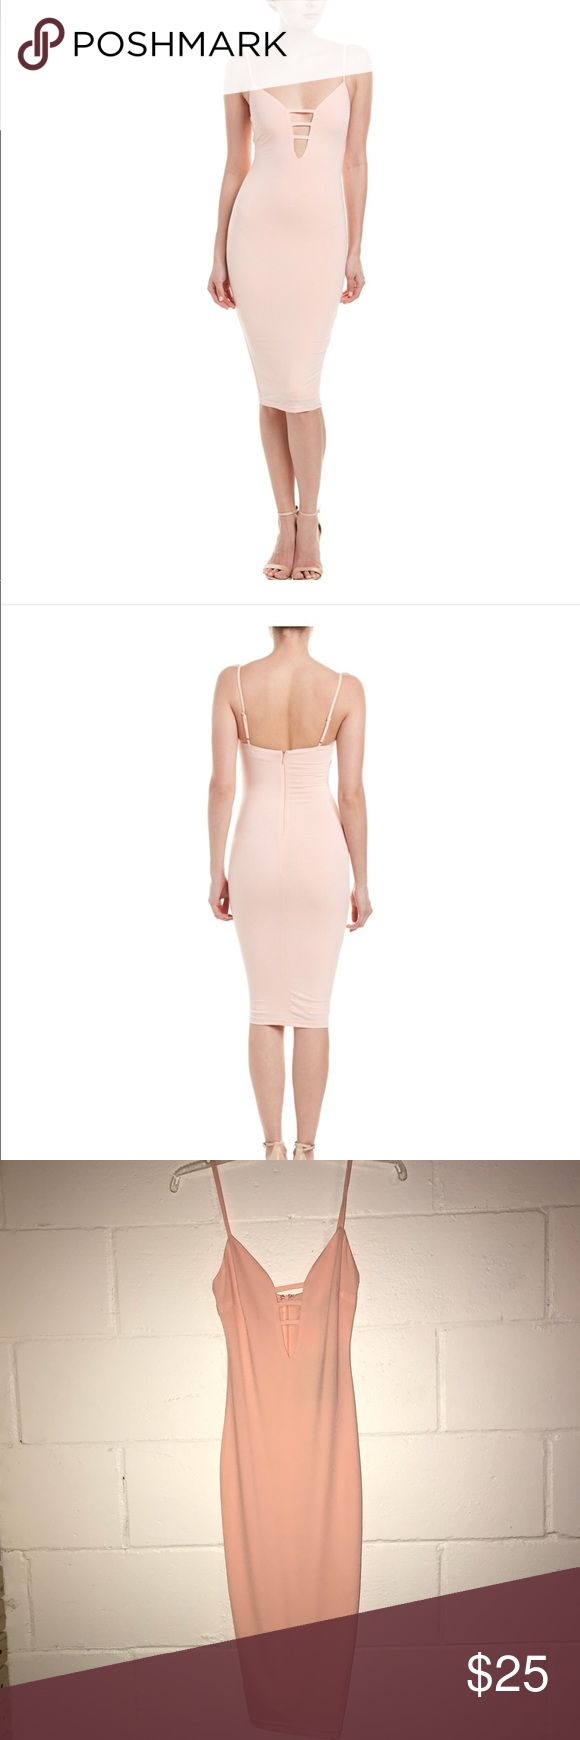 Dress Dance & Marvel Color/Pattern: Blush Approximately 41in From Shoulder To Hem Measurement Was Taken From A Size Small And May Vary Slightly By Size Design Details: Keyhole Details At Front, Adjustable Shoulder Straps Center Back Zipper With Hook-And-Eye Closure 95% Polyester, 5% Spandex Dry Clean Only Imported Fashion Nova Dresses Midi